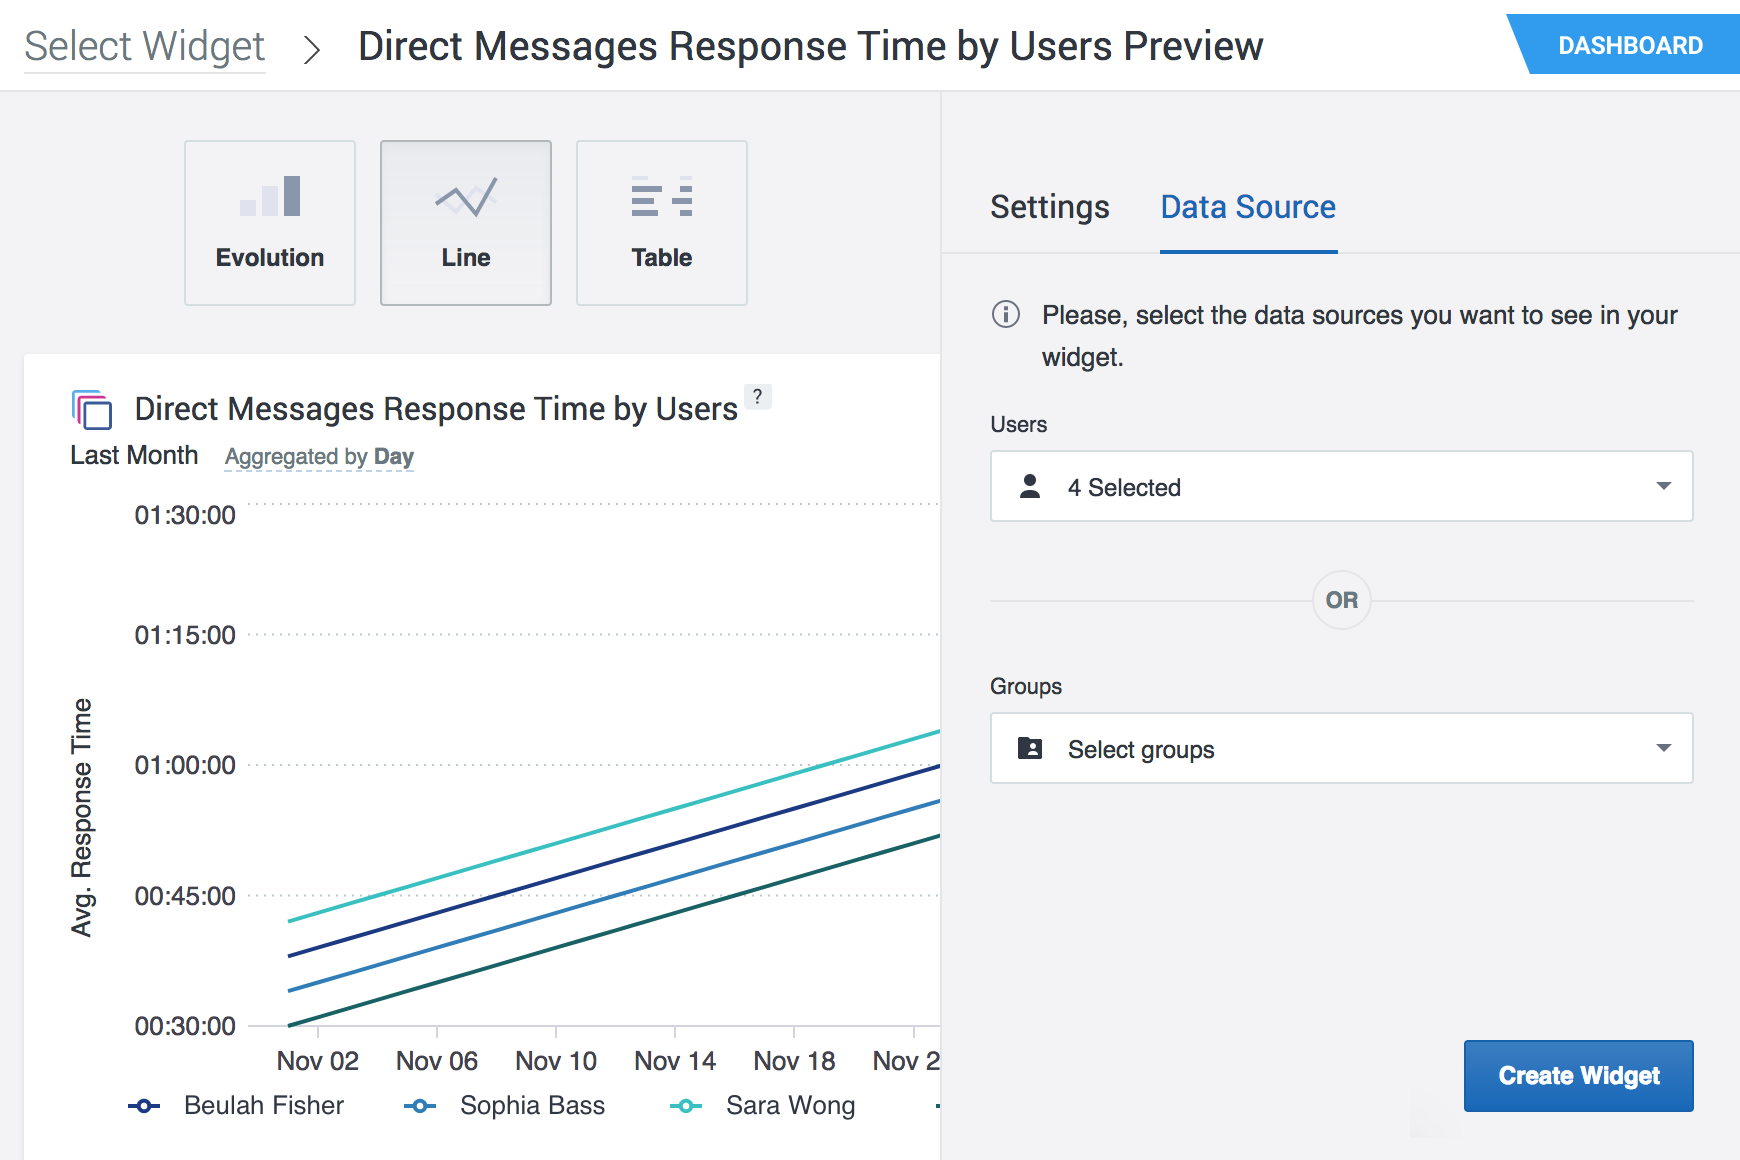 Socialbakers_Dashboard_Community_Reporting_Direct_Messages_Response_Time_by_Users_Line_2x.png